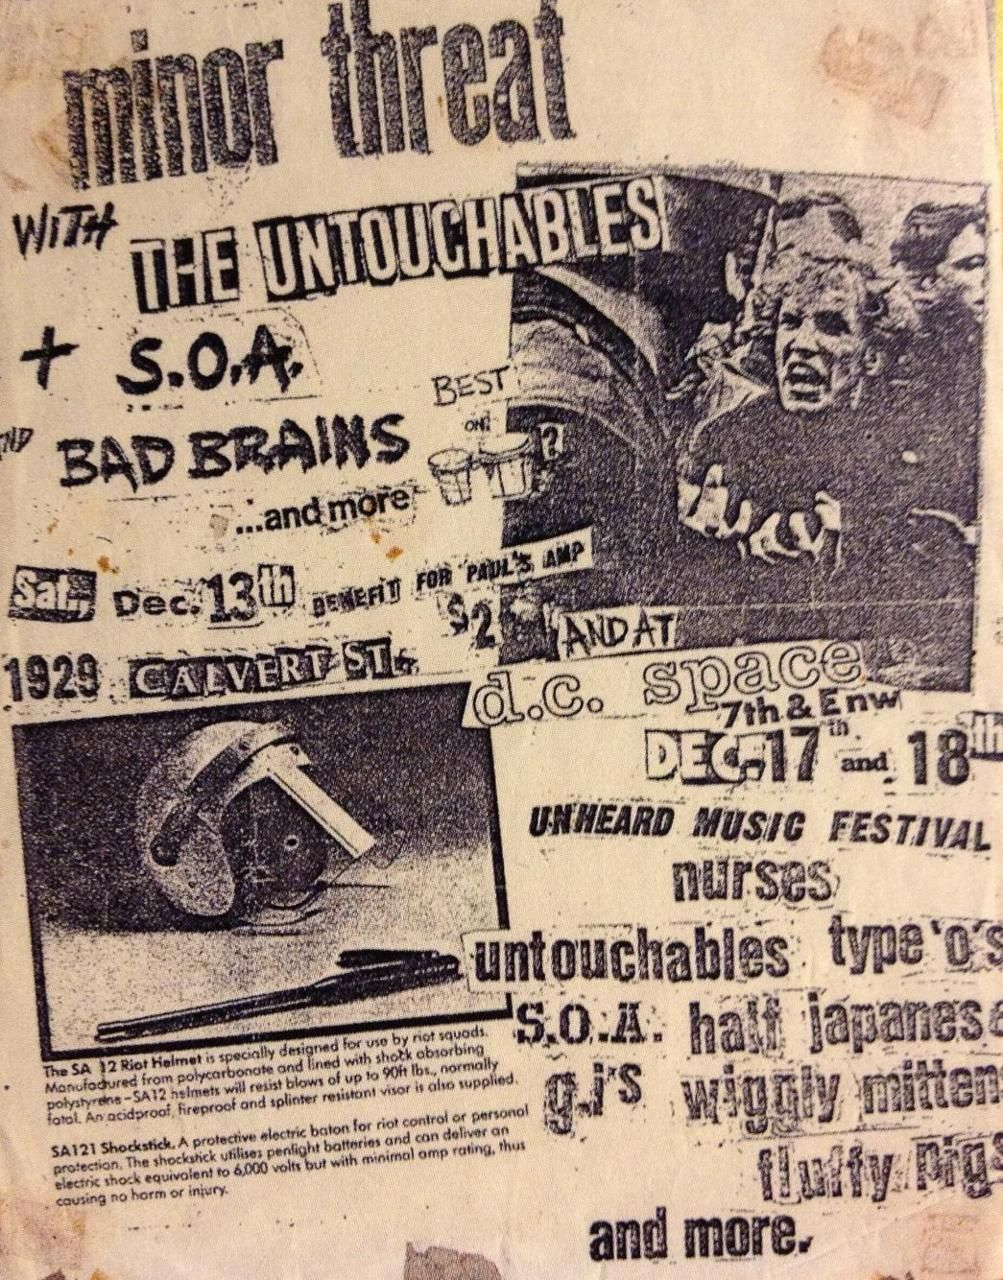 Minor Threat's first gig, SOA, Bad Brains, & Untouchables @ a basement  party,Calvert St. NW Dec 1980